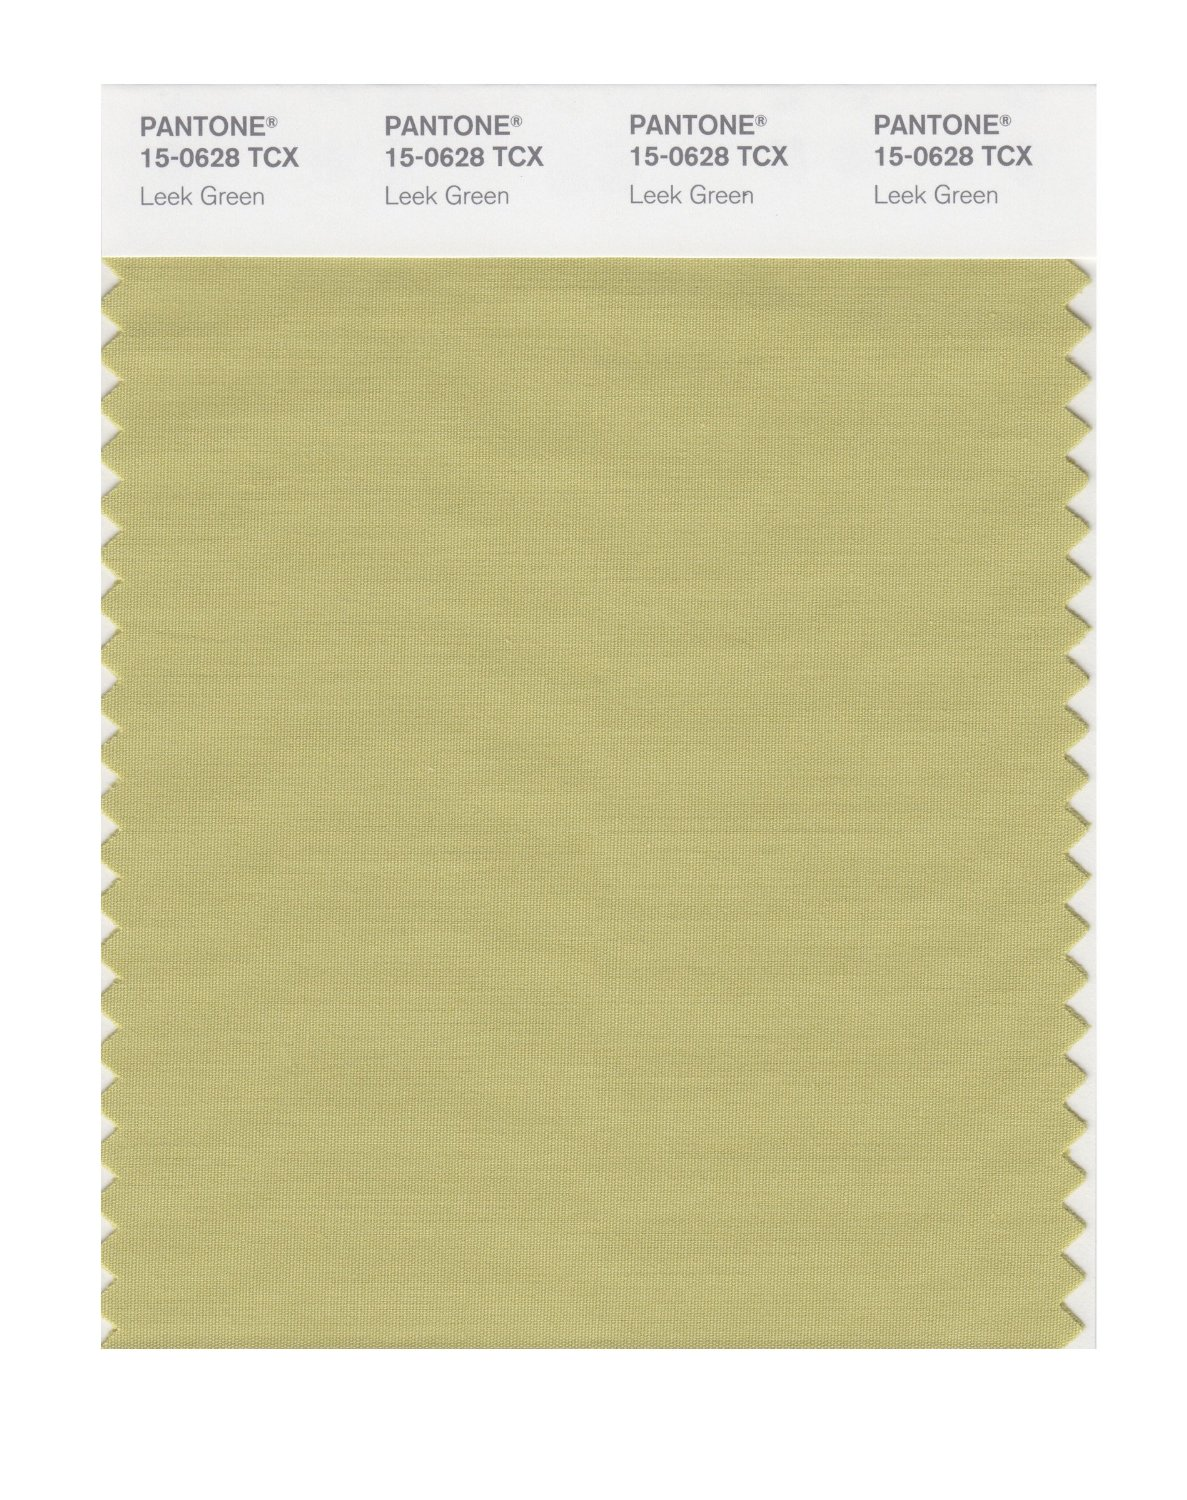 Pantone Smart Swatch 15-0628 Leek Green